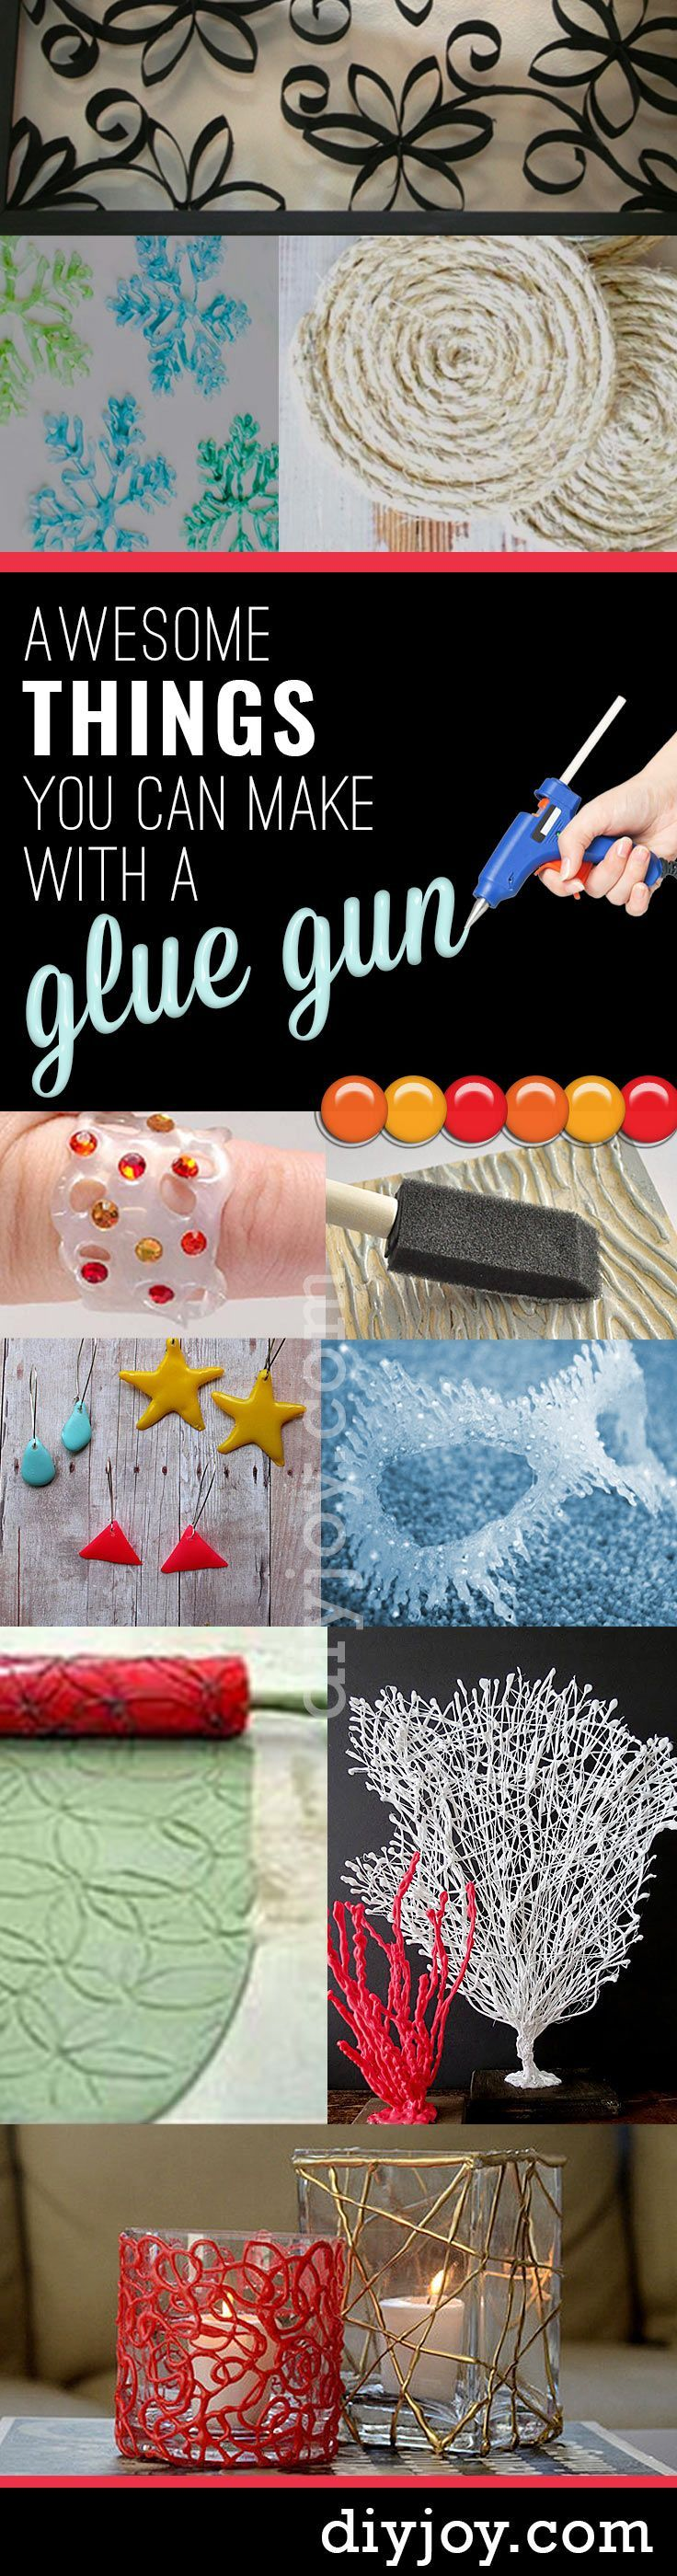 38 Unbelievably Cool Things You Can Make With A Glue Gun